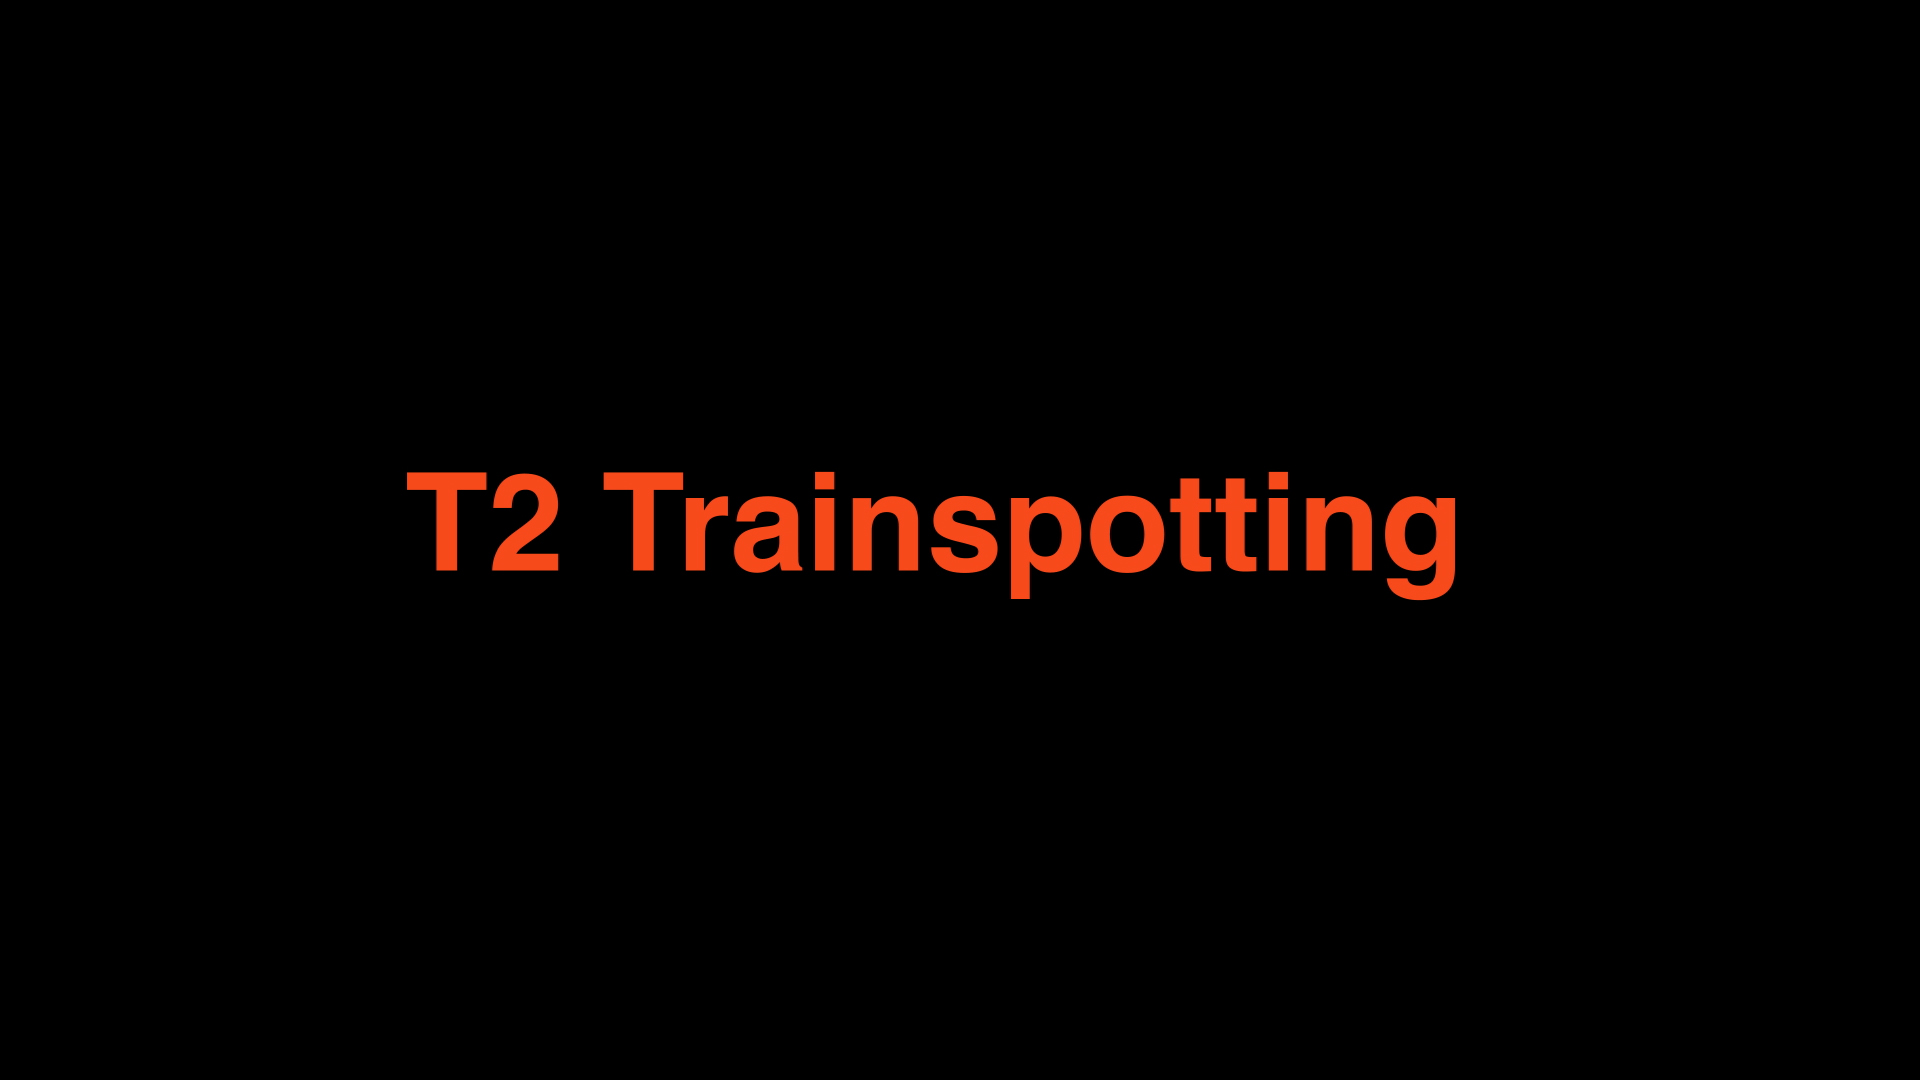 t2_trainspotting_blog_